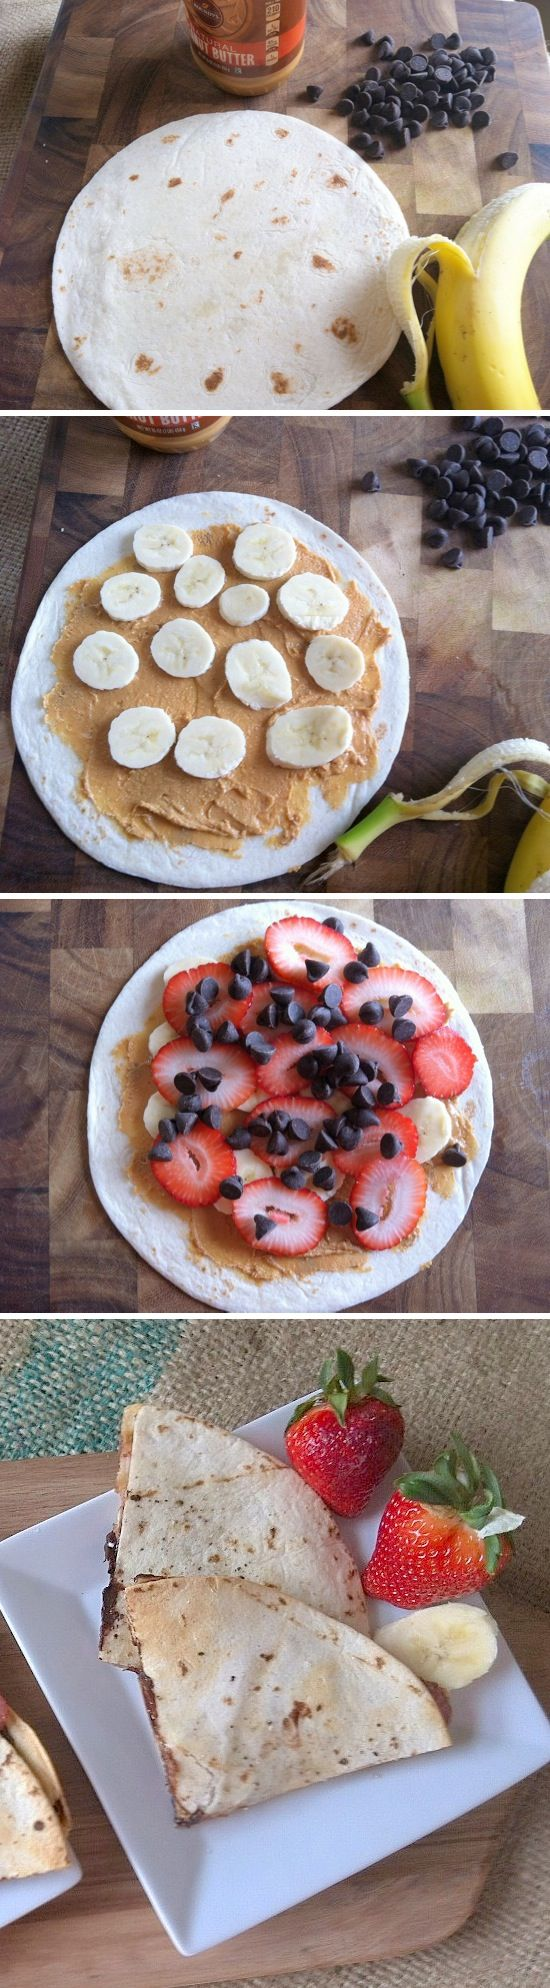 Breakfast Quesadillas | Recipe by Picture | Corn tortilla, 2 tablespoons peanut butter/PB2, 1/2 sliced banana, 1/2 cup sliced strawberries, 1 tablespoon chocolate chips. (Approx. 440 calories with regular peanut butter; 295 with PB2)